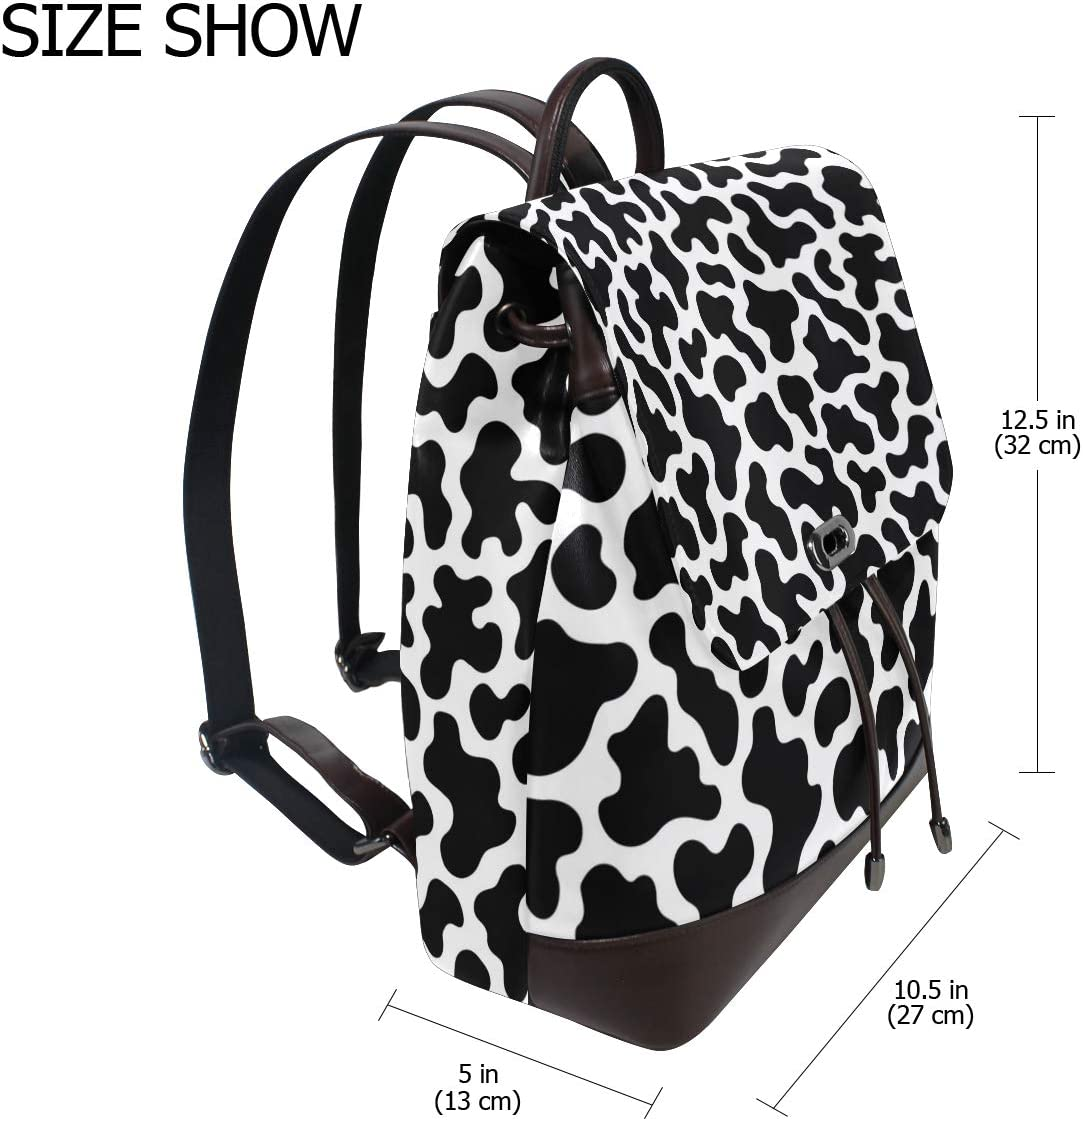 Unisex PU Leather Backpack Animal Skin Cow Spots Print Womens Casual Daypack Mens Travel Sports Bag Boys College Bookbag